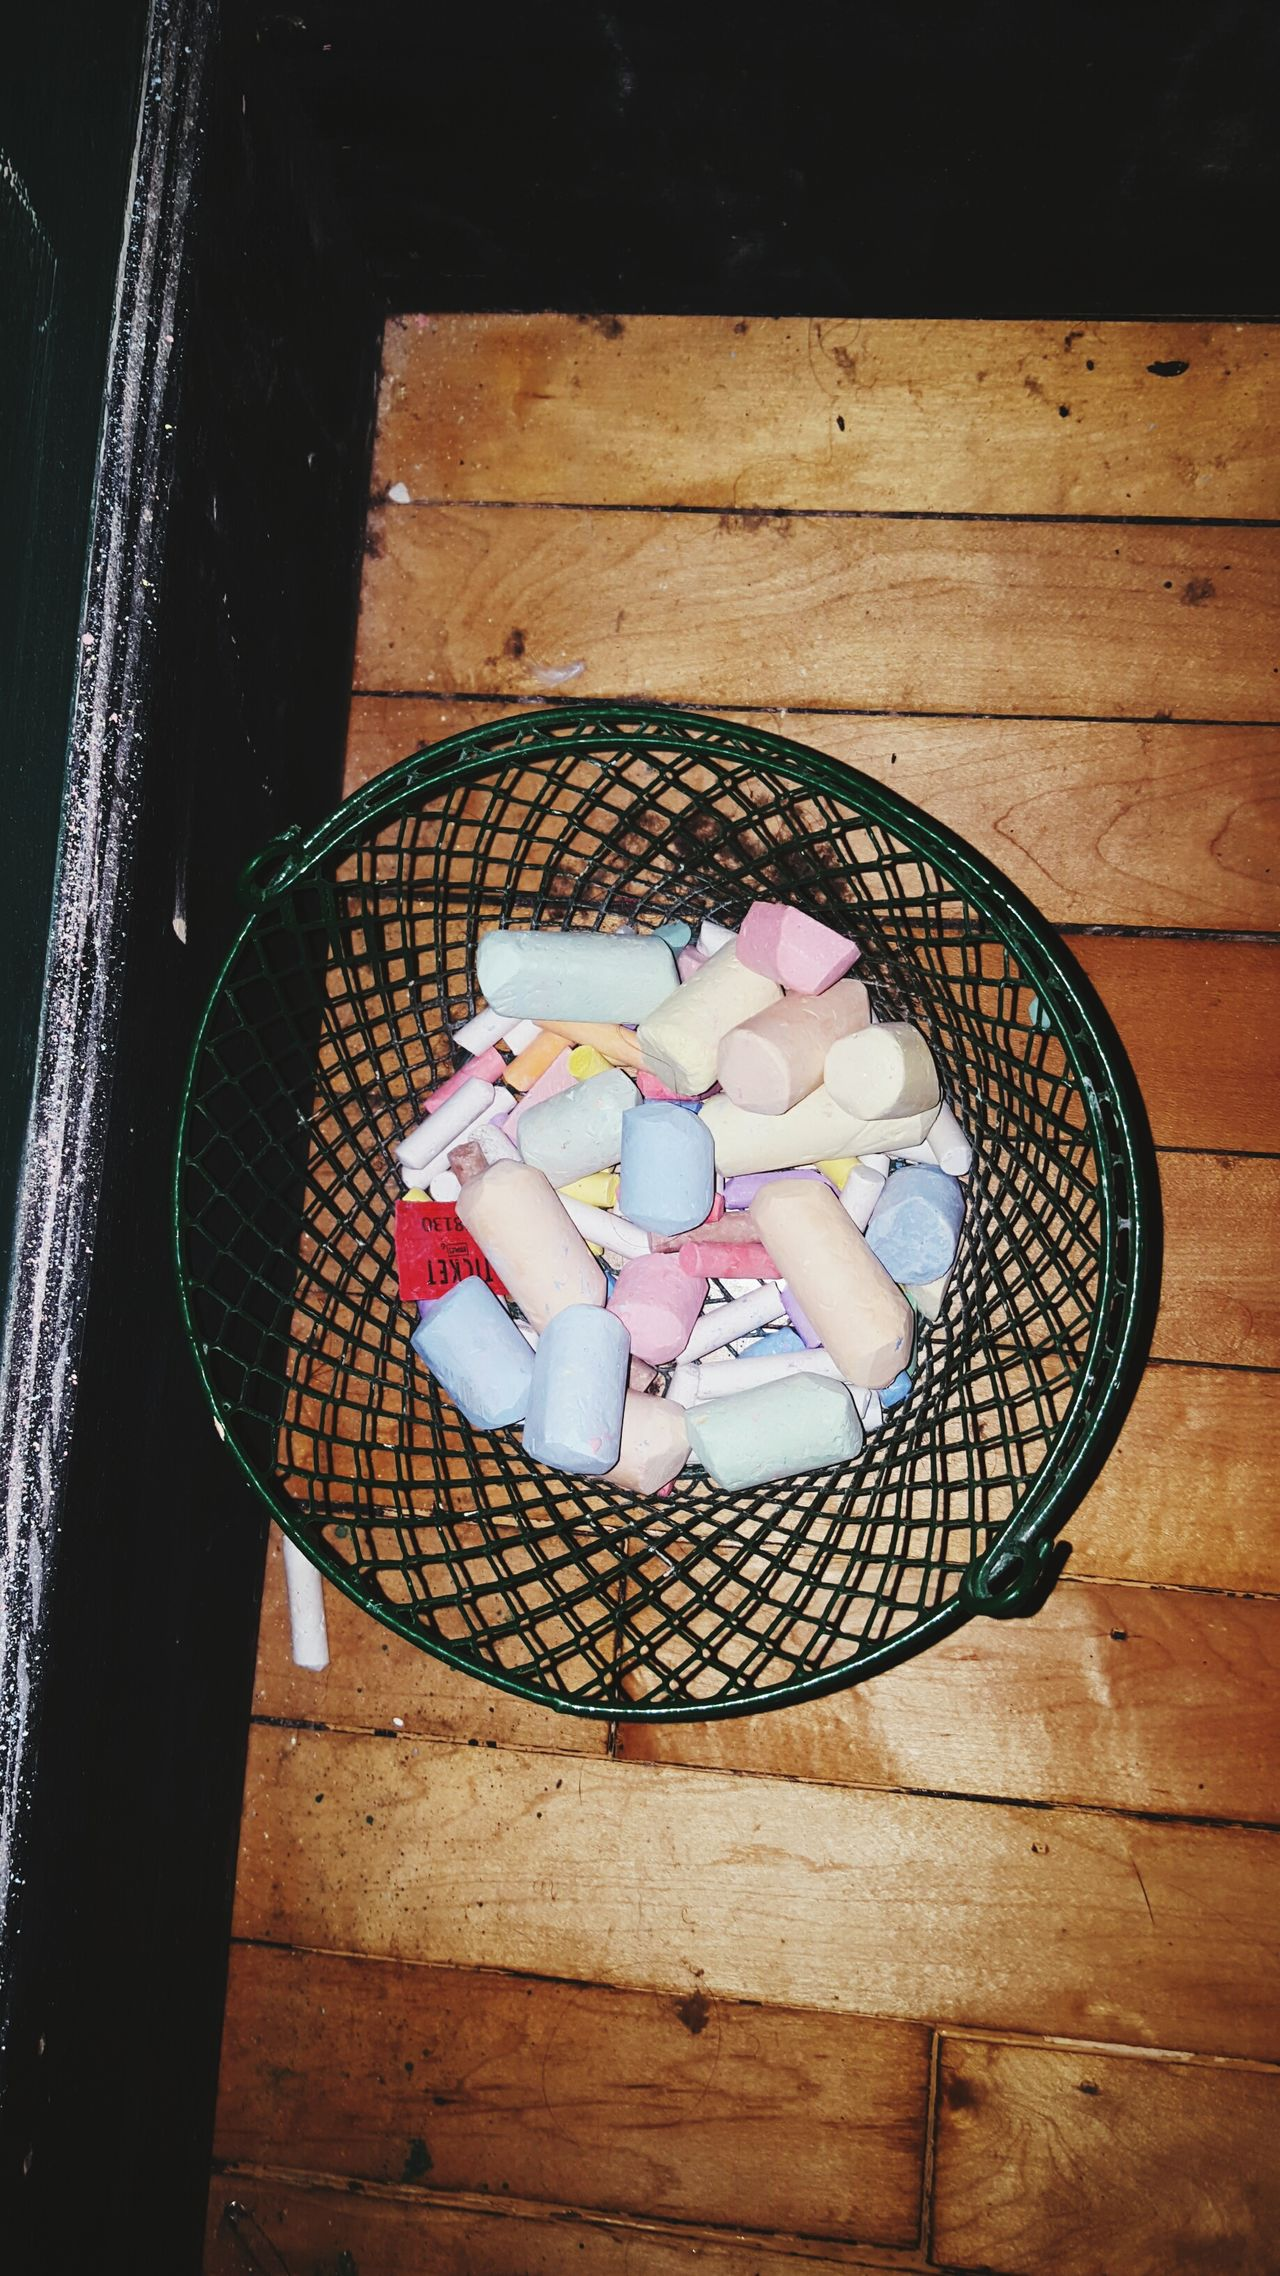 Chalk Colors House Party Art Basket Everything In Its Place Wood Floor Wood Floors Be Creative Urban Loft Urban Art Love Life Chicago Express Yourself Express Yourself Through Art Express Yourself ❤ Art Supplies Art, Drawing, Creativity Art And Craft Art Photography EyeEm Best Shots Eye4photography  EyeEm Gallery EyeEm Best Edits